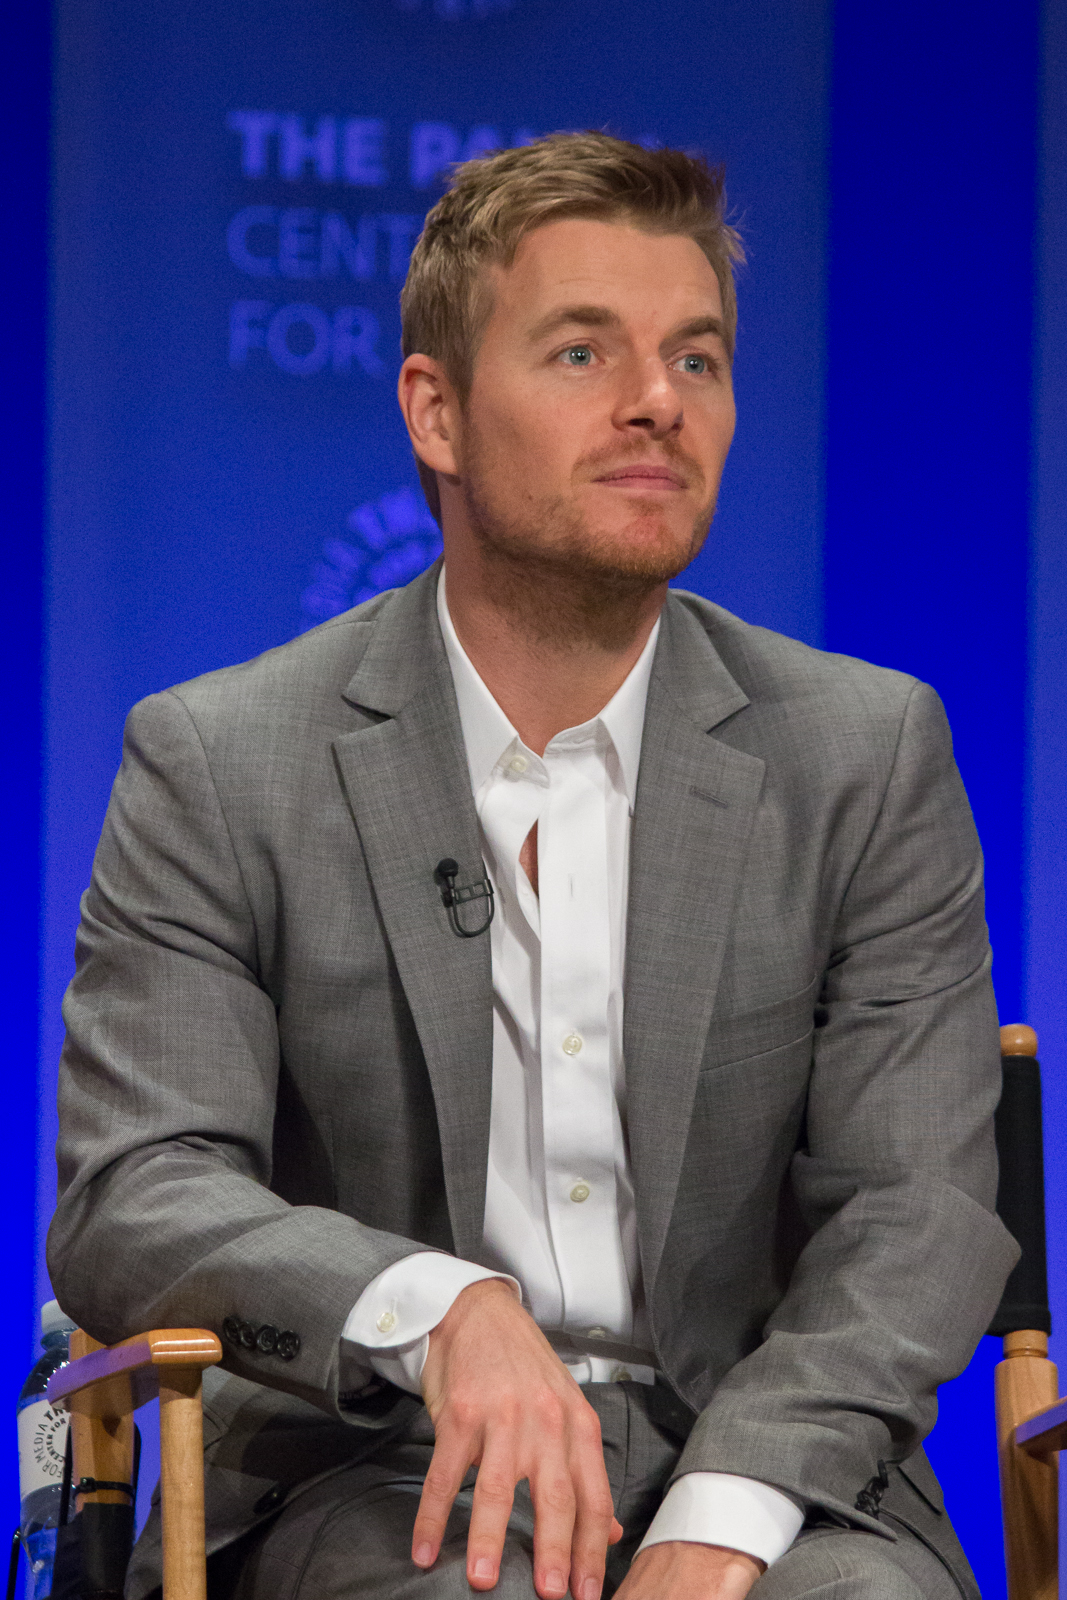 The 35-year old son of father (?) and mother(?) Rick Cosnett in 2018 photo. Rick Cosnett earned a  million dollar salary - leaving the net worth at 1 million in 2018